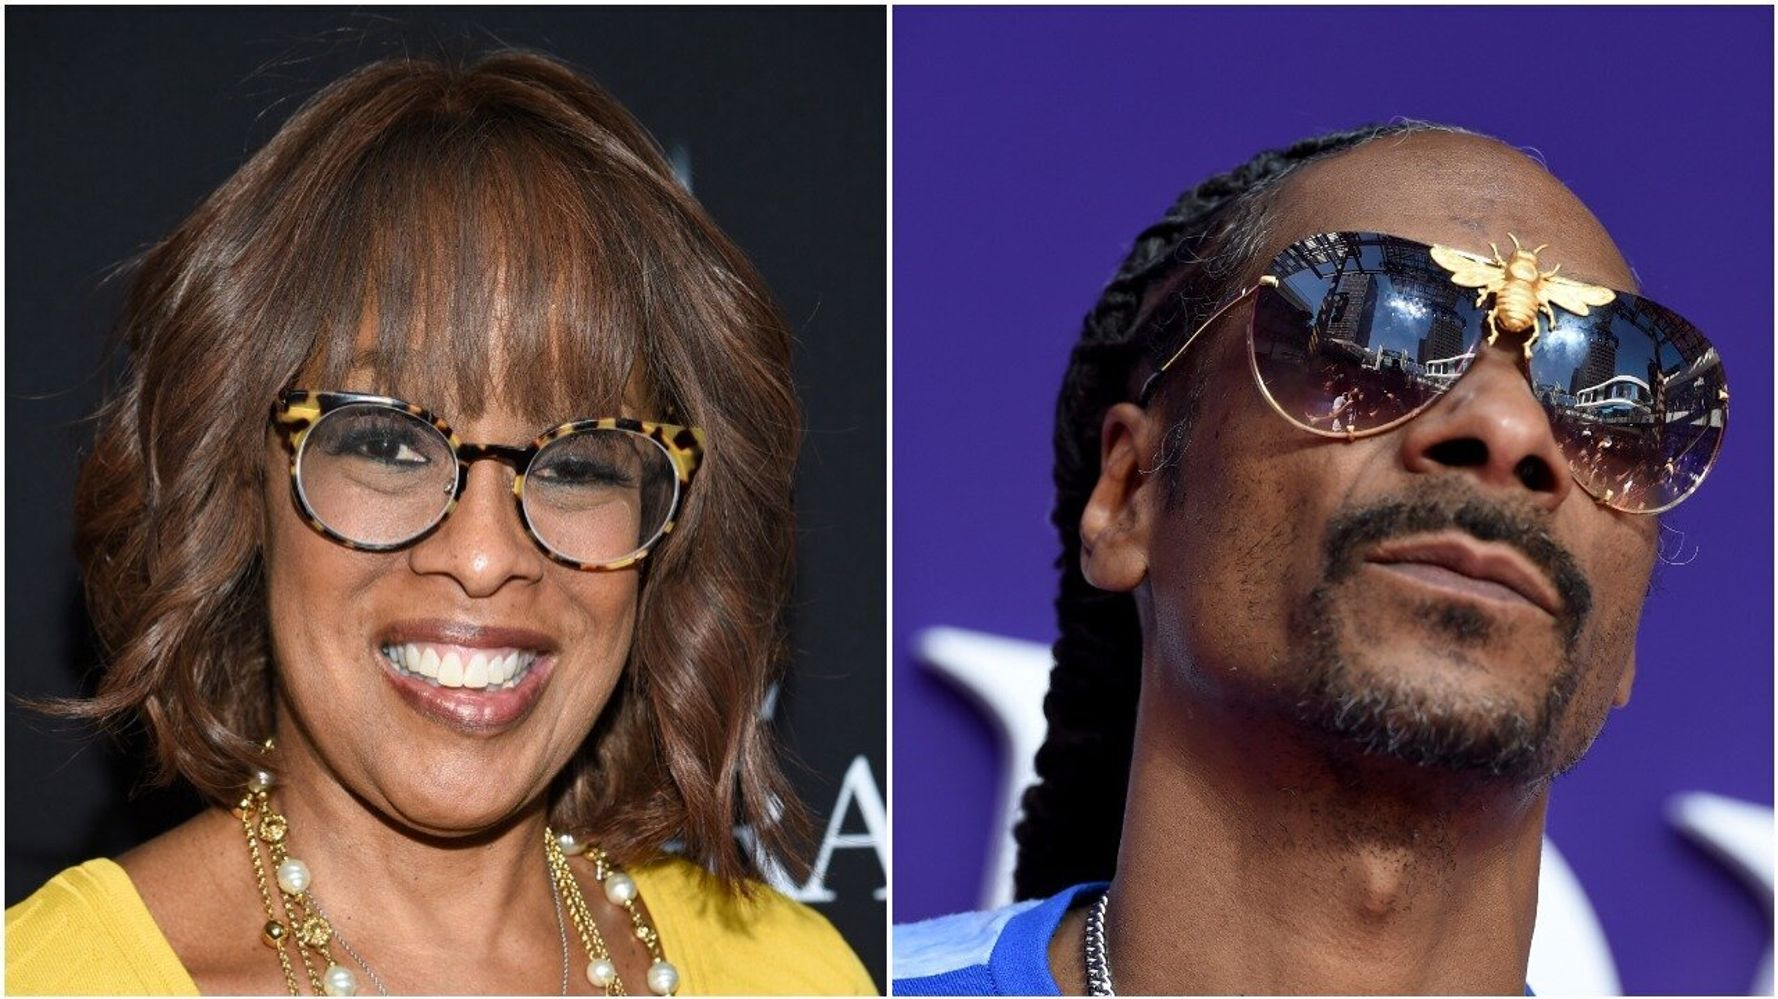 Snoop Dogg Apologizes To Gayle King For 'Derogatory' Attack Over Kobe Bryant